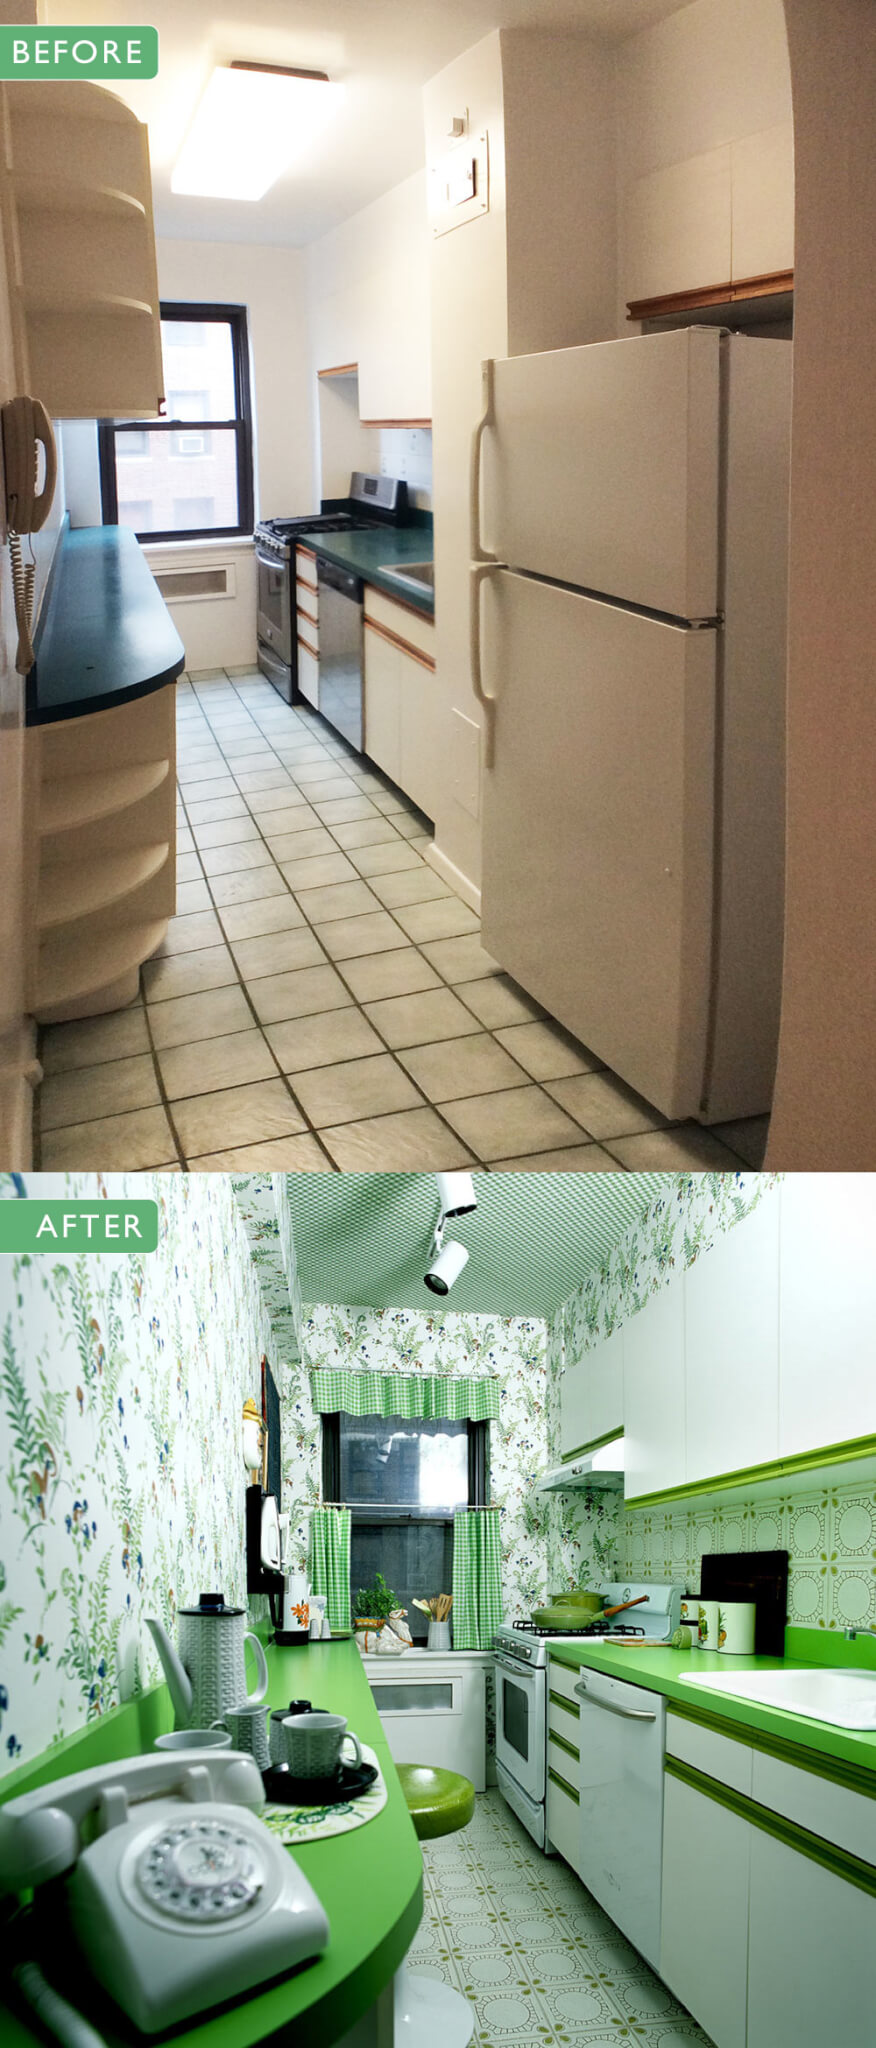 ben sander kitchen design before and after